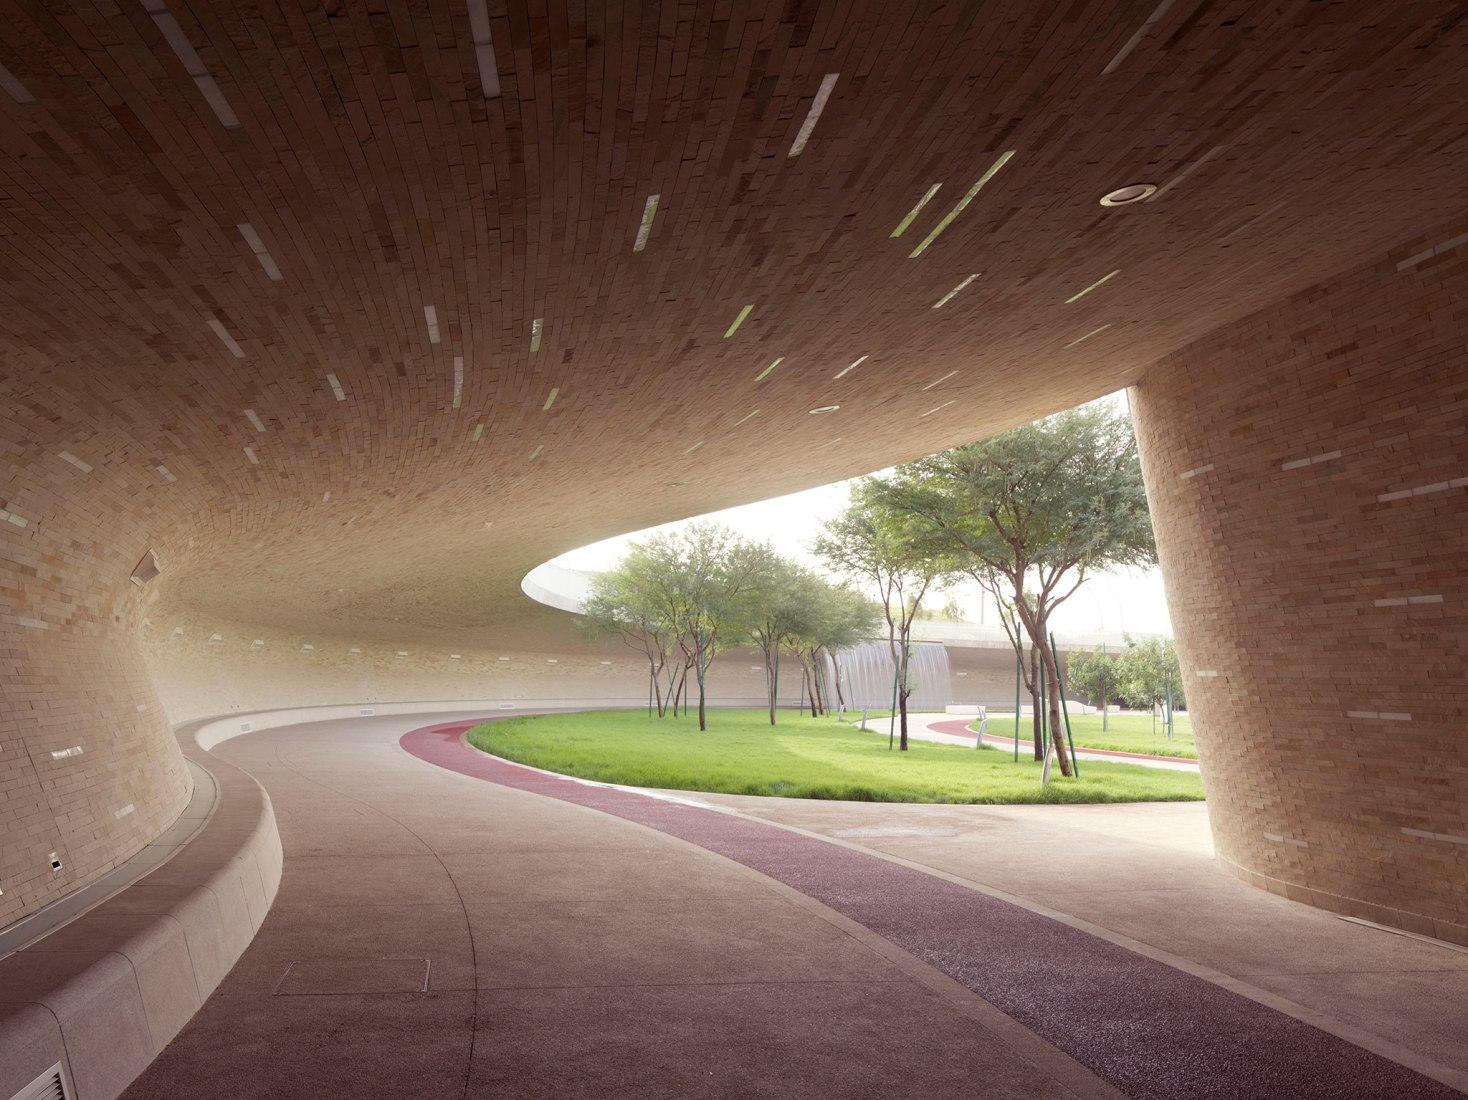 Covered Walkway - Lower Park Level. Oxygen Park, Education City by AECOM. Photograph © Markus Elblaus